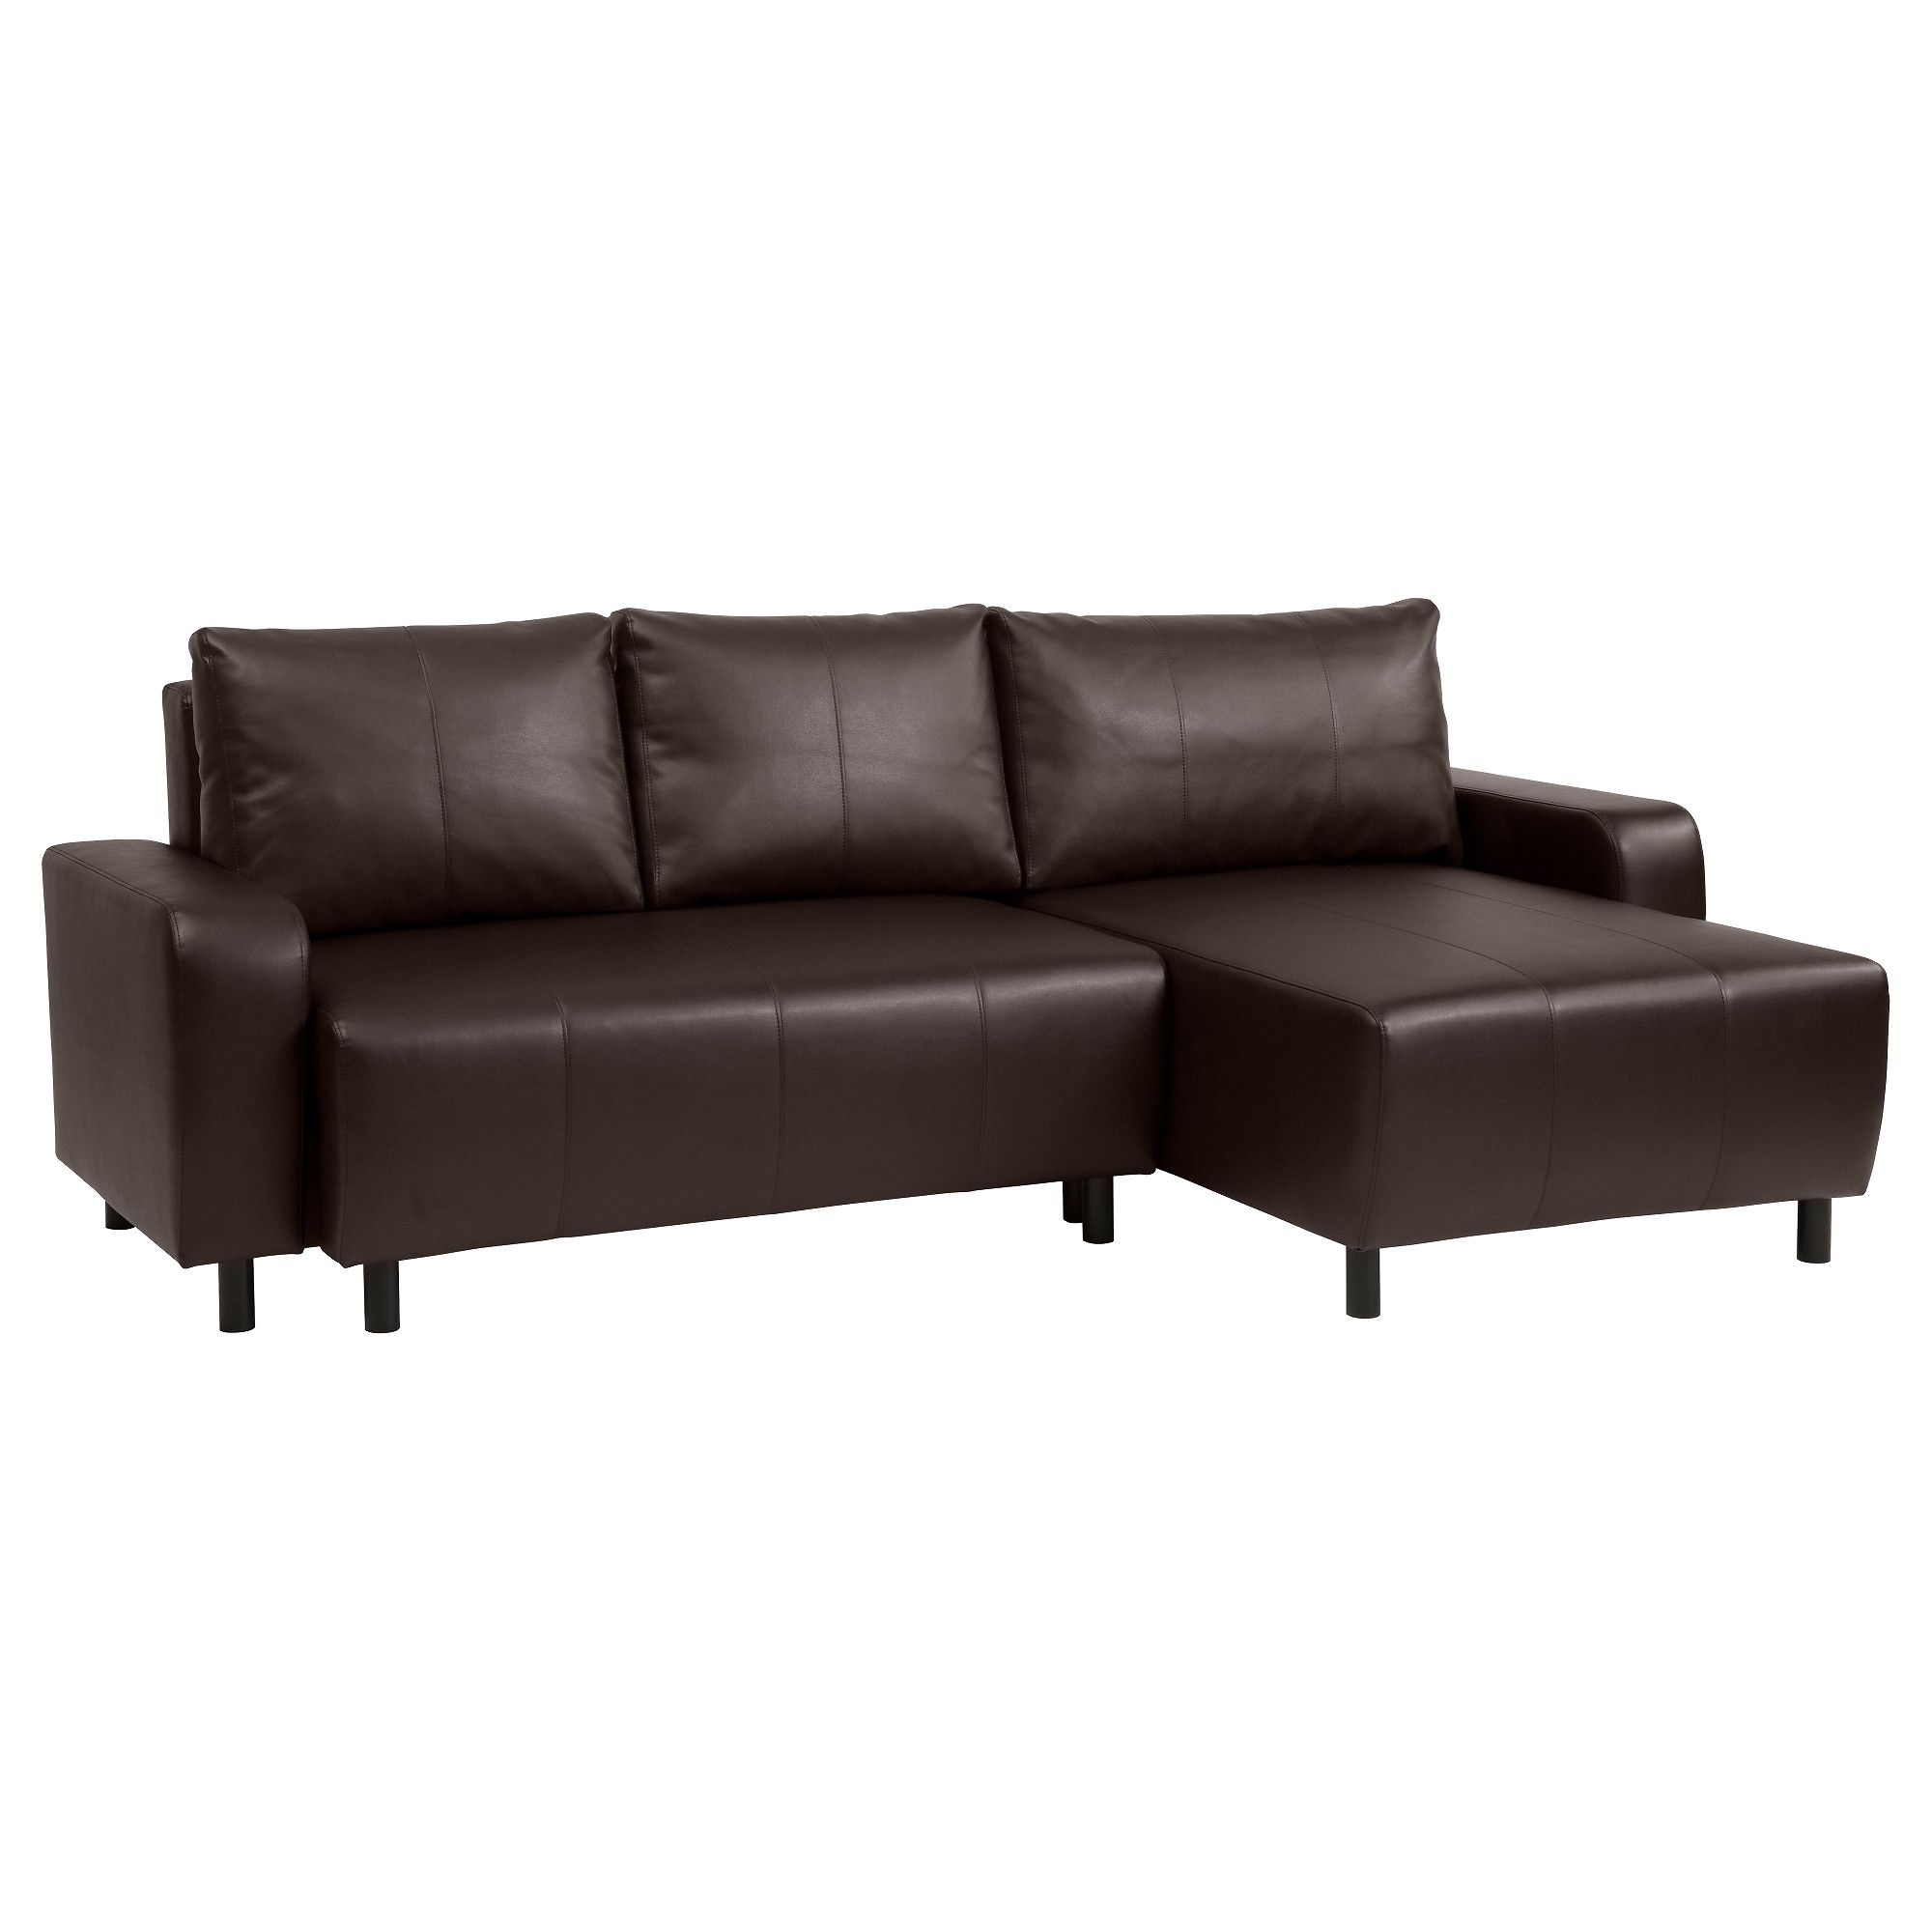 Preferred Ikea Chaise Couches In Ikea – Djursbo, Sleeper Sectional, 3 Seat, Kimstad Brown, , You (View 12 of 15)